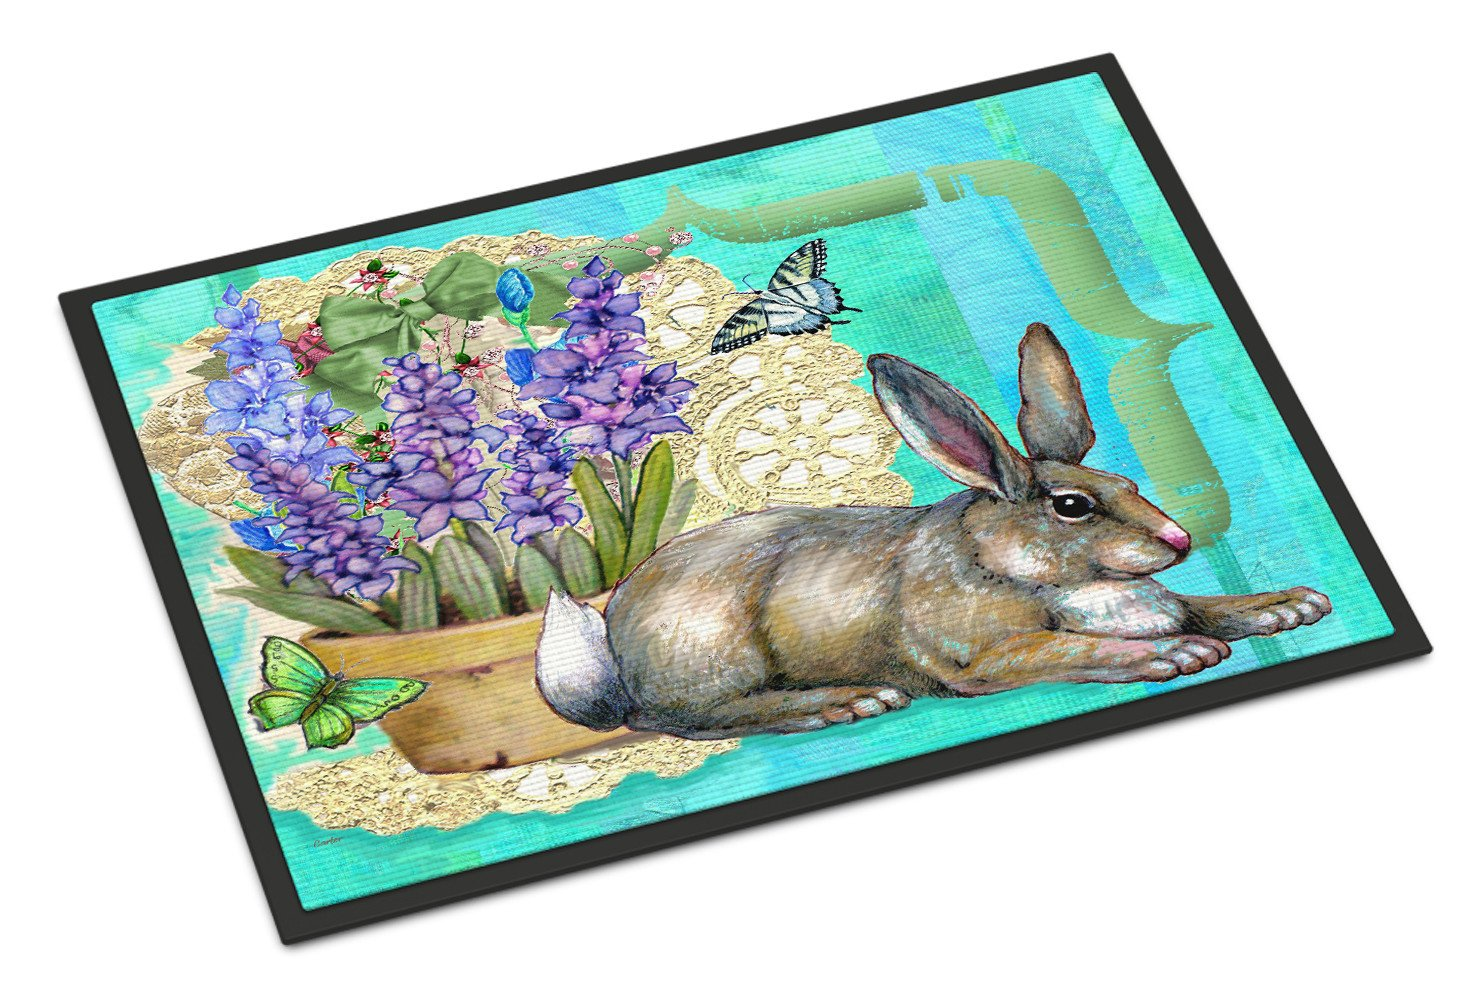 Springtime Easter Rabbit Indoor or Outdoor Mat 18x27 PJC1068MAT - the-store.com